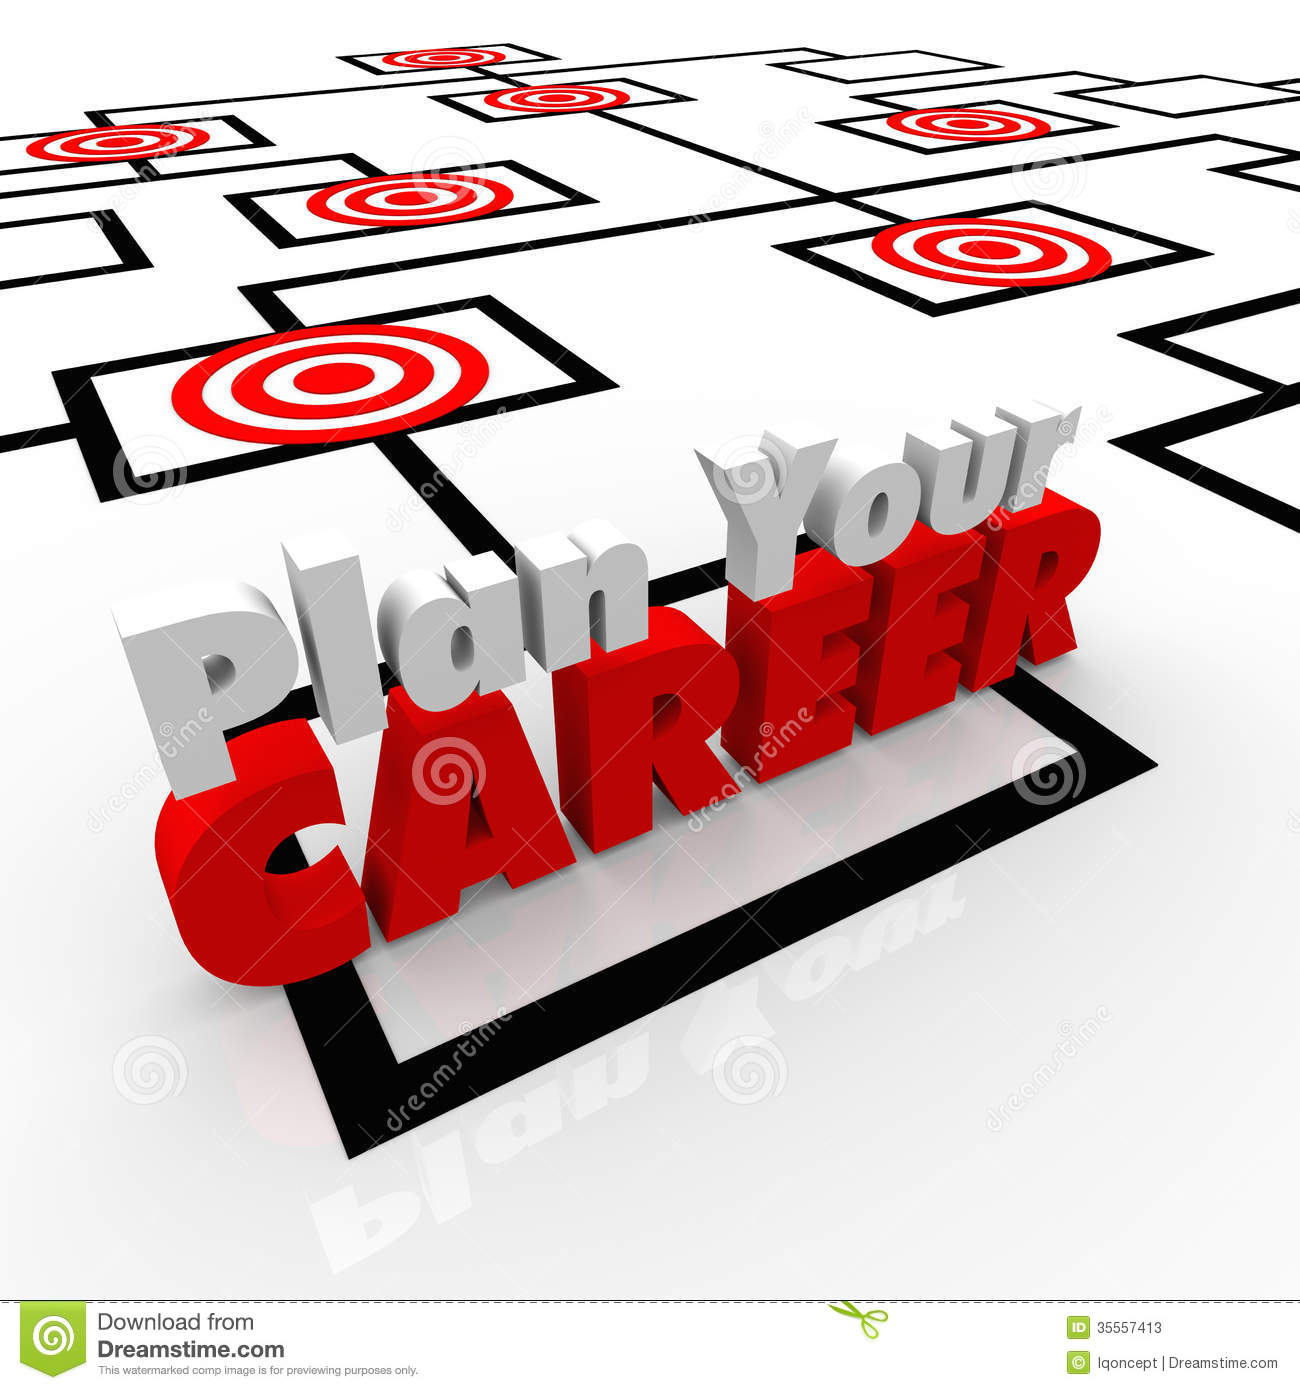 plan your career targeted positions org chart targeted jobs stock plan your career targeted positions org chart targeted jobs